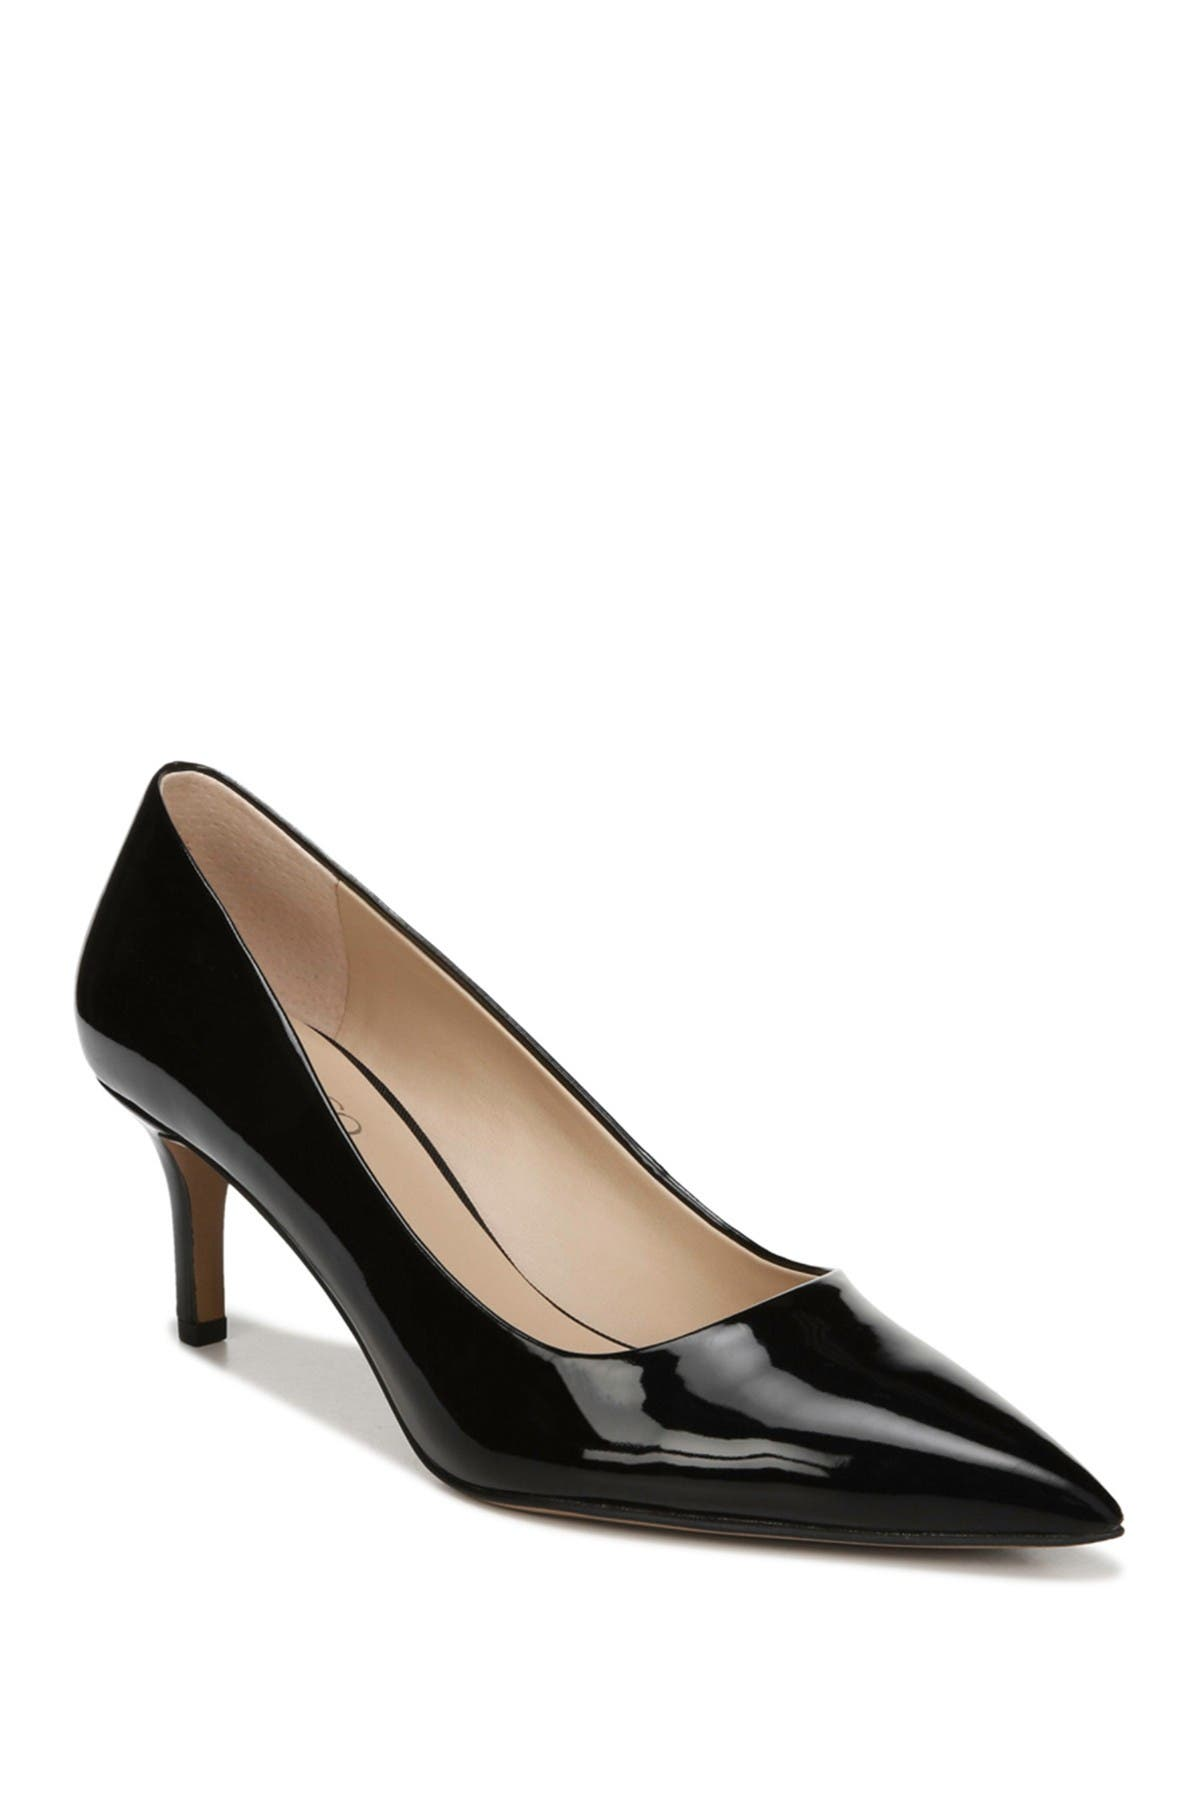 Image of Franco Sarto Tudor Pointed Toe Pump